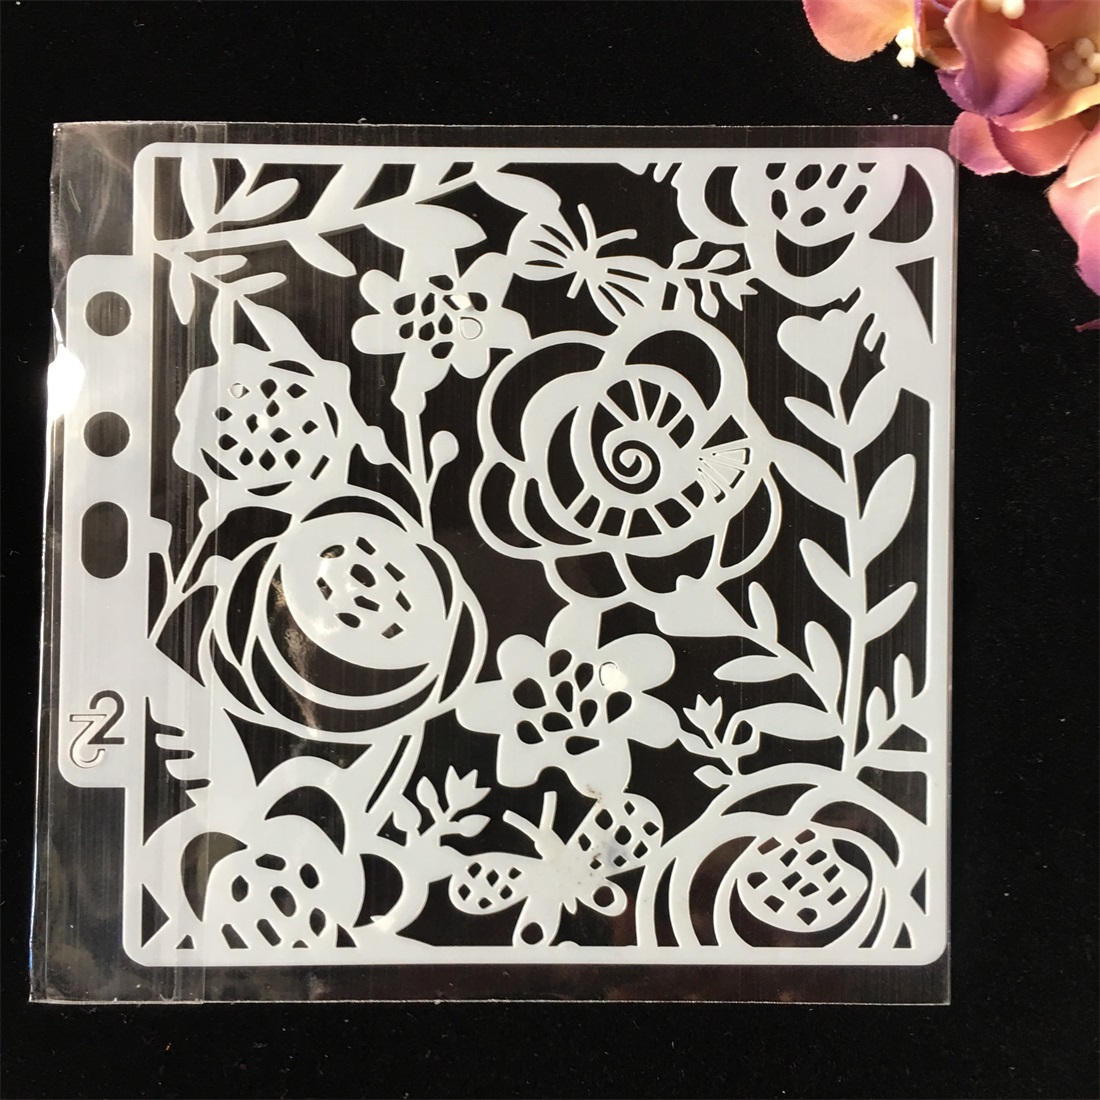 1Pcs Bee Flower DIY Layering Stencils Wall Painting Scrapbook Coloring Embossing Album Decorative Paper Card Template